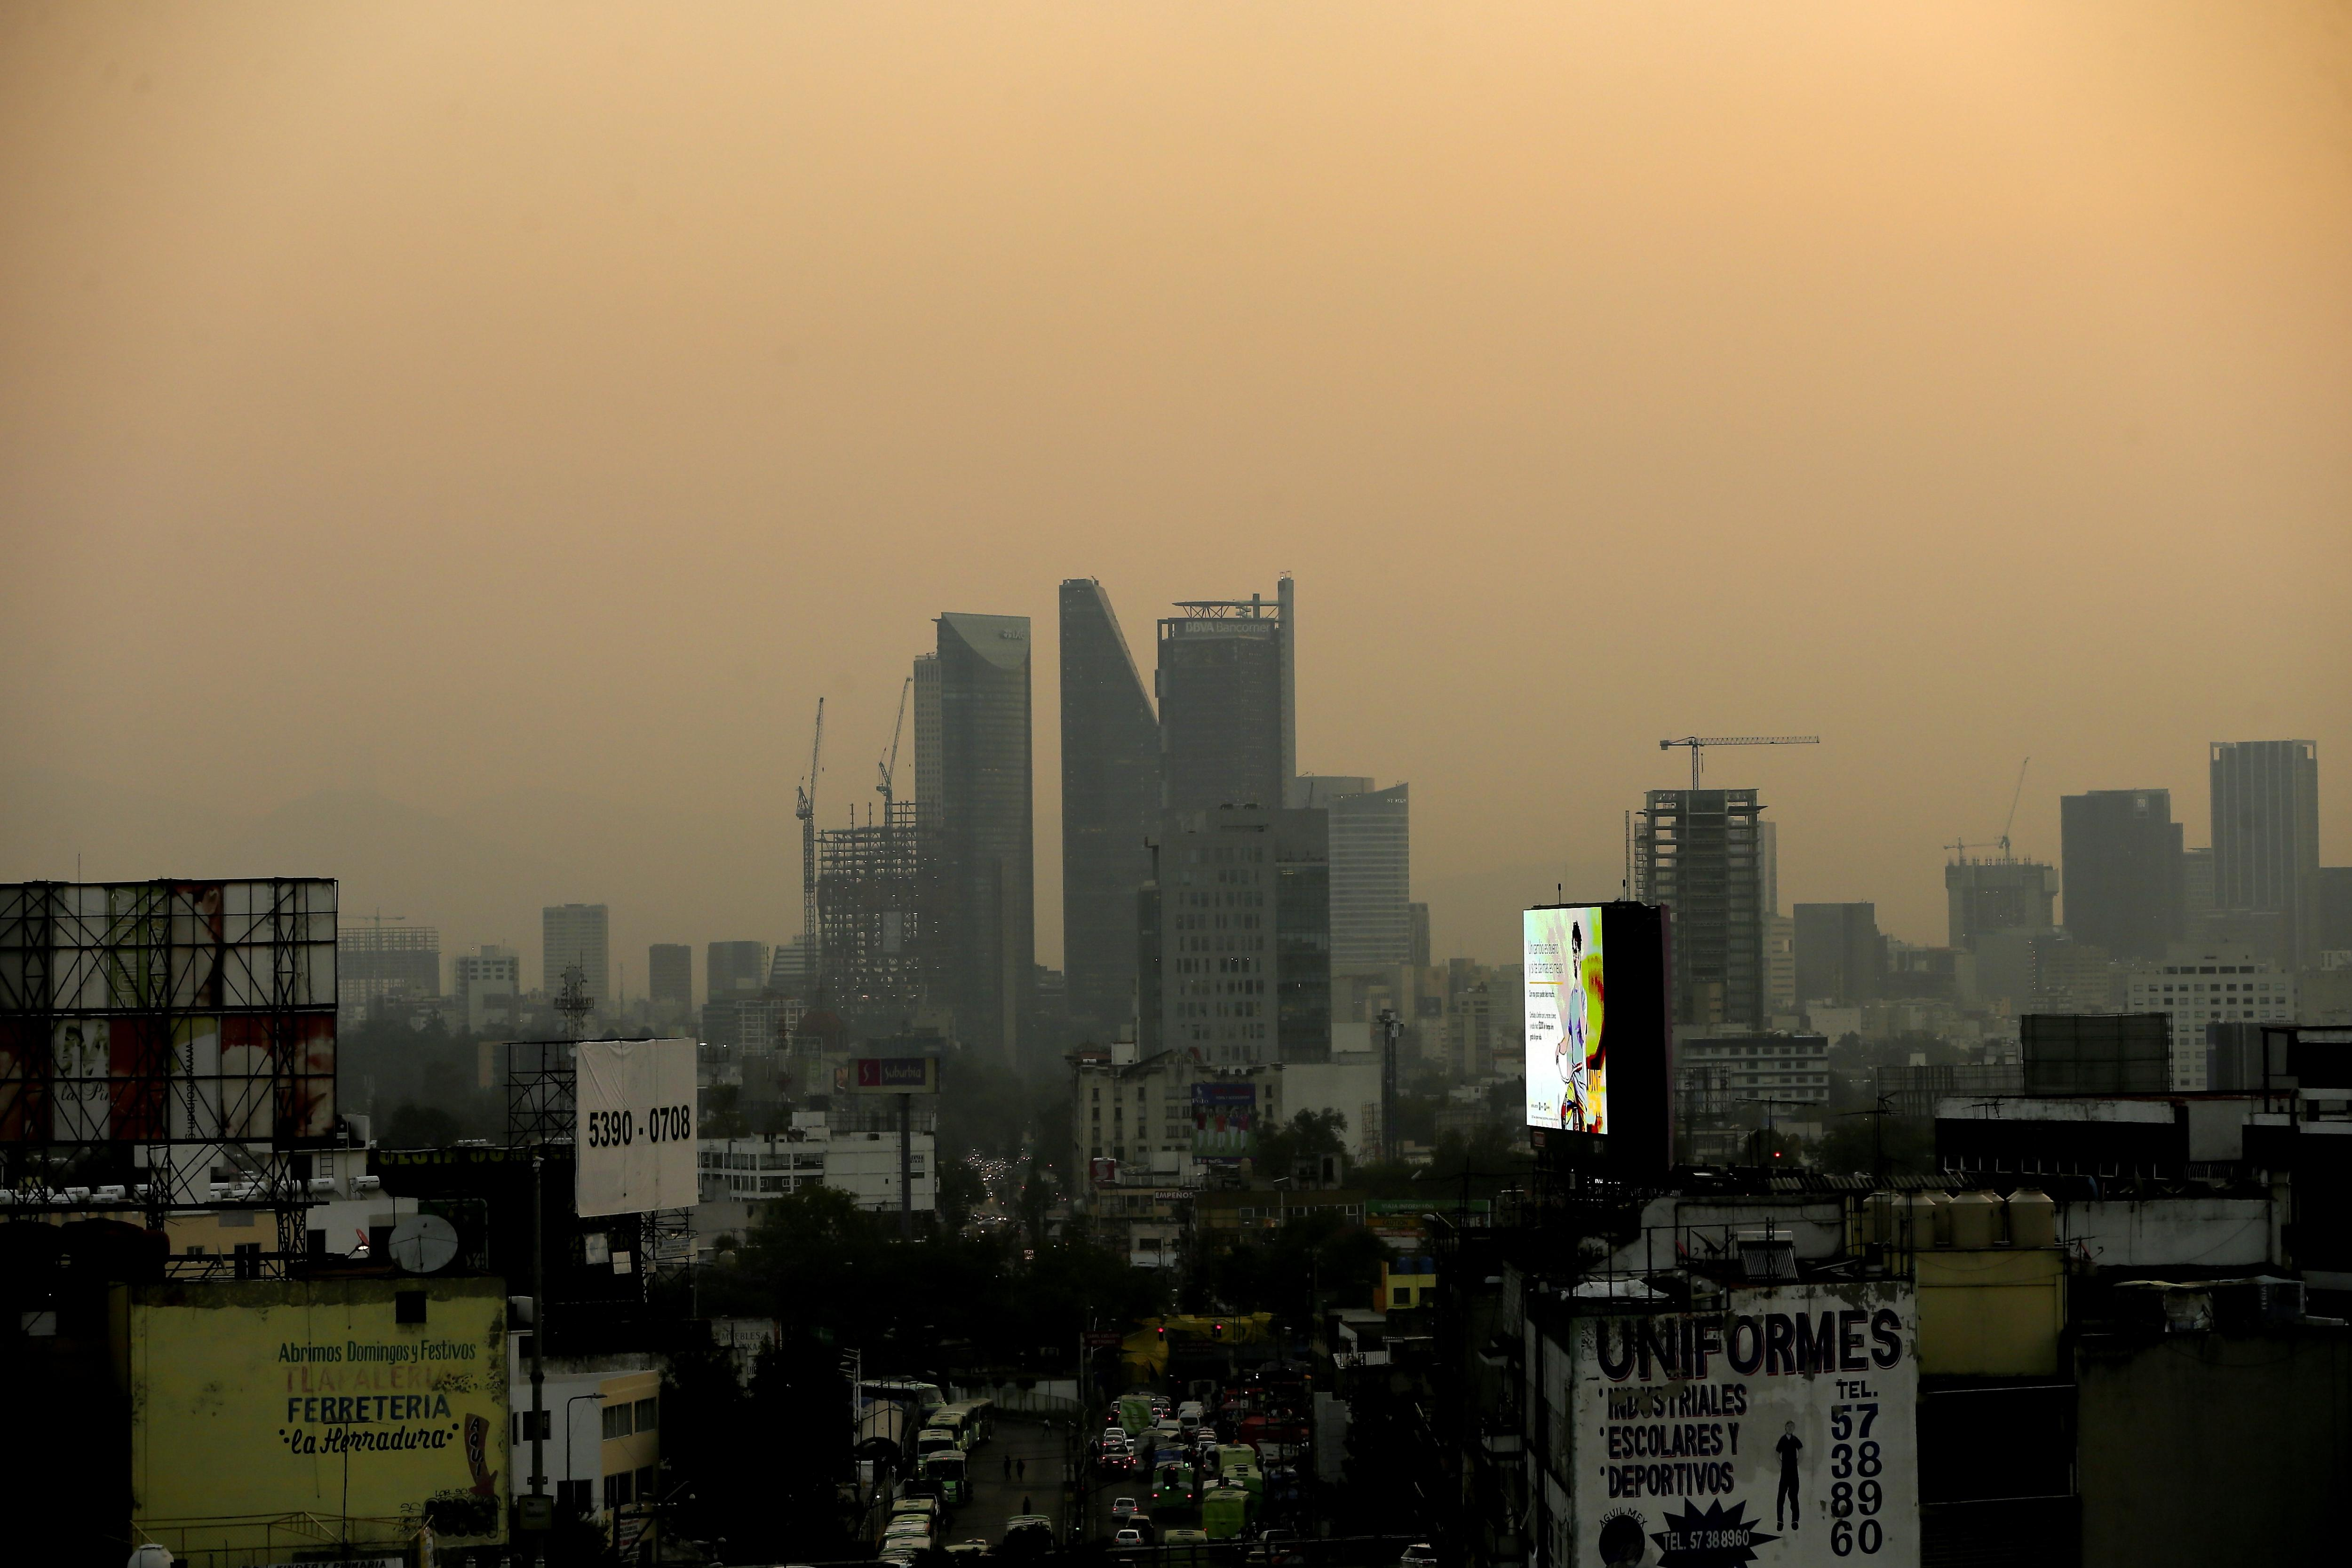 A general view showing the Mexico City skyline shrouded in air pollution, in Mexico City, Mexico, 17 May 2017. The first phase of environmental continence by ozone continues in the capital because of the high pollution rates recorded. Given this scenario, it has been decided to maintain phase one of environmental contingency by ozone in the Metropolitan Zone of the Valley of Mexico, integrated by Mexico City and municipalities of the States of Mexico and Hidalgo.Environmental pollution in Mexico City - 17 May 2017